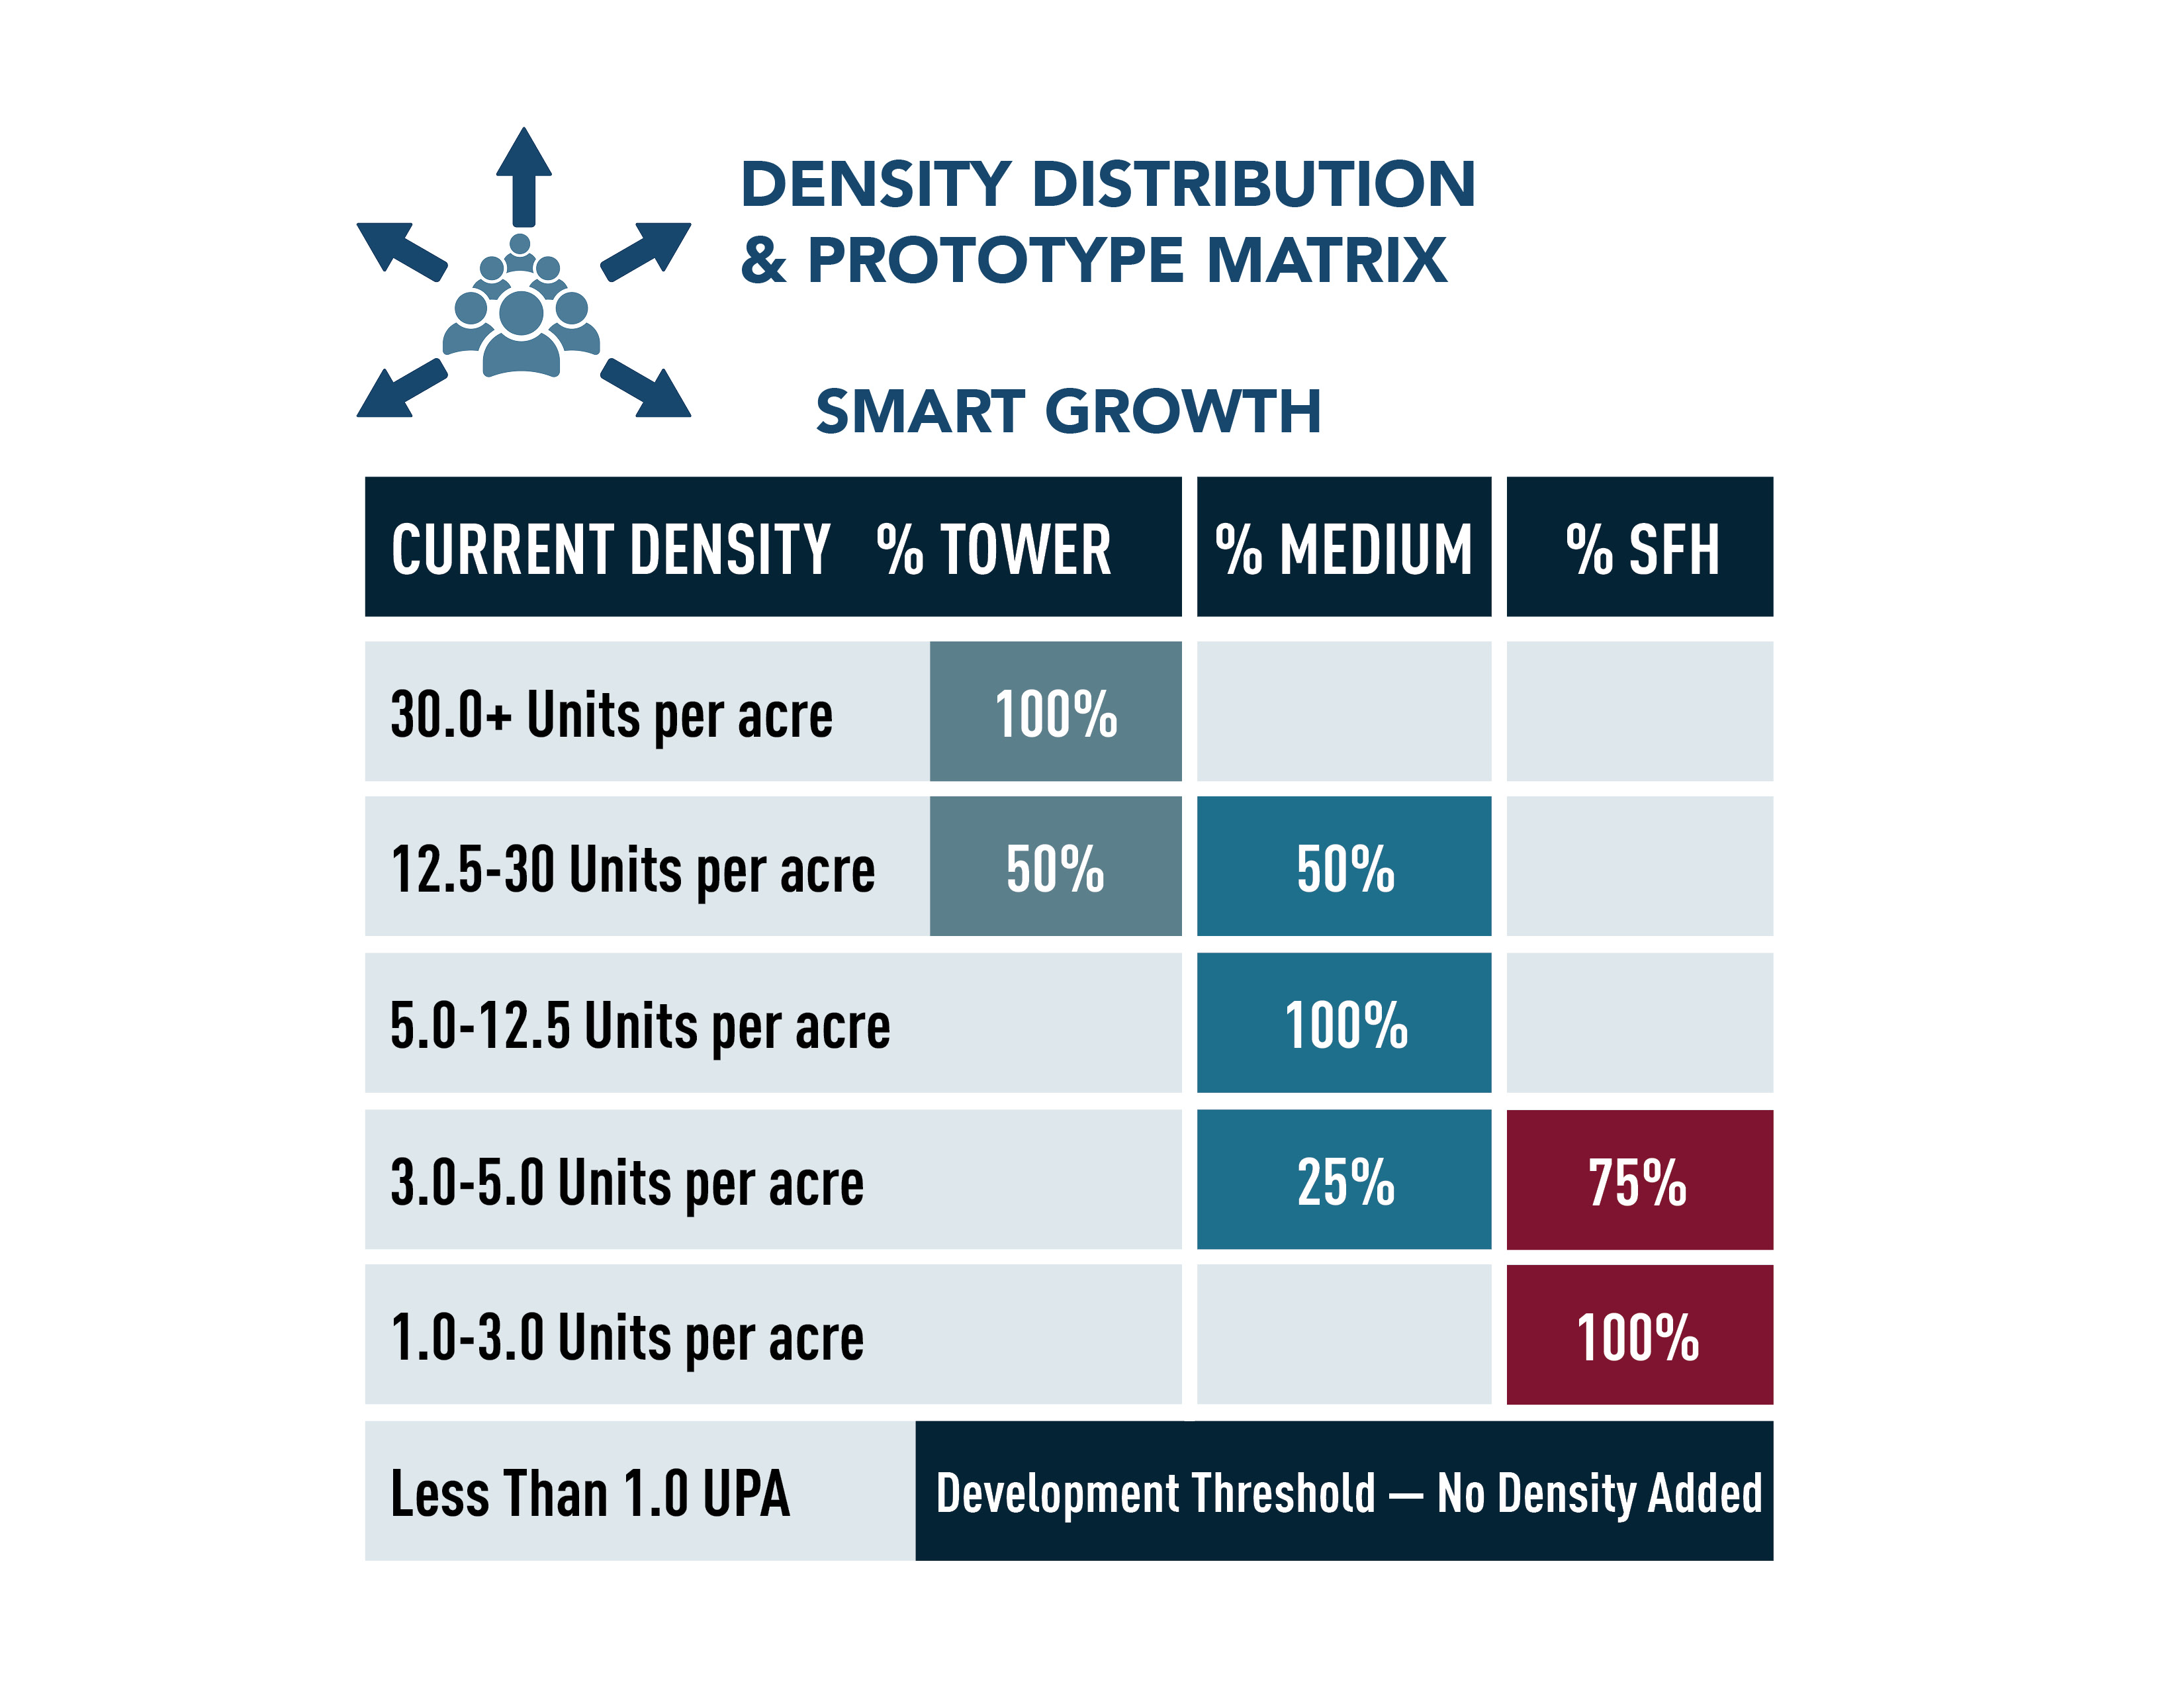 Density Distribution